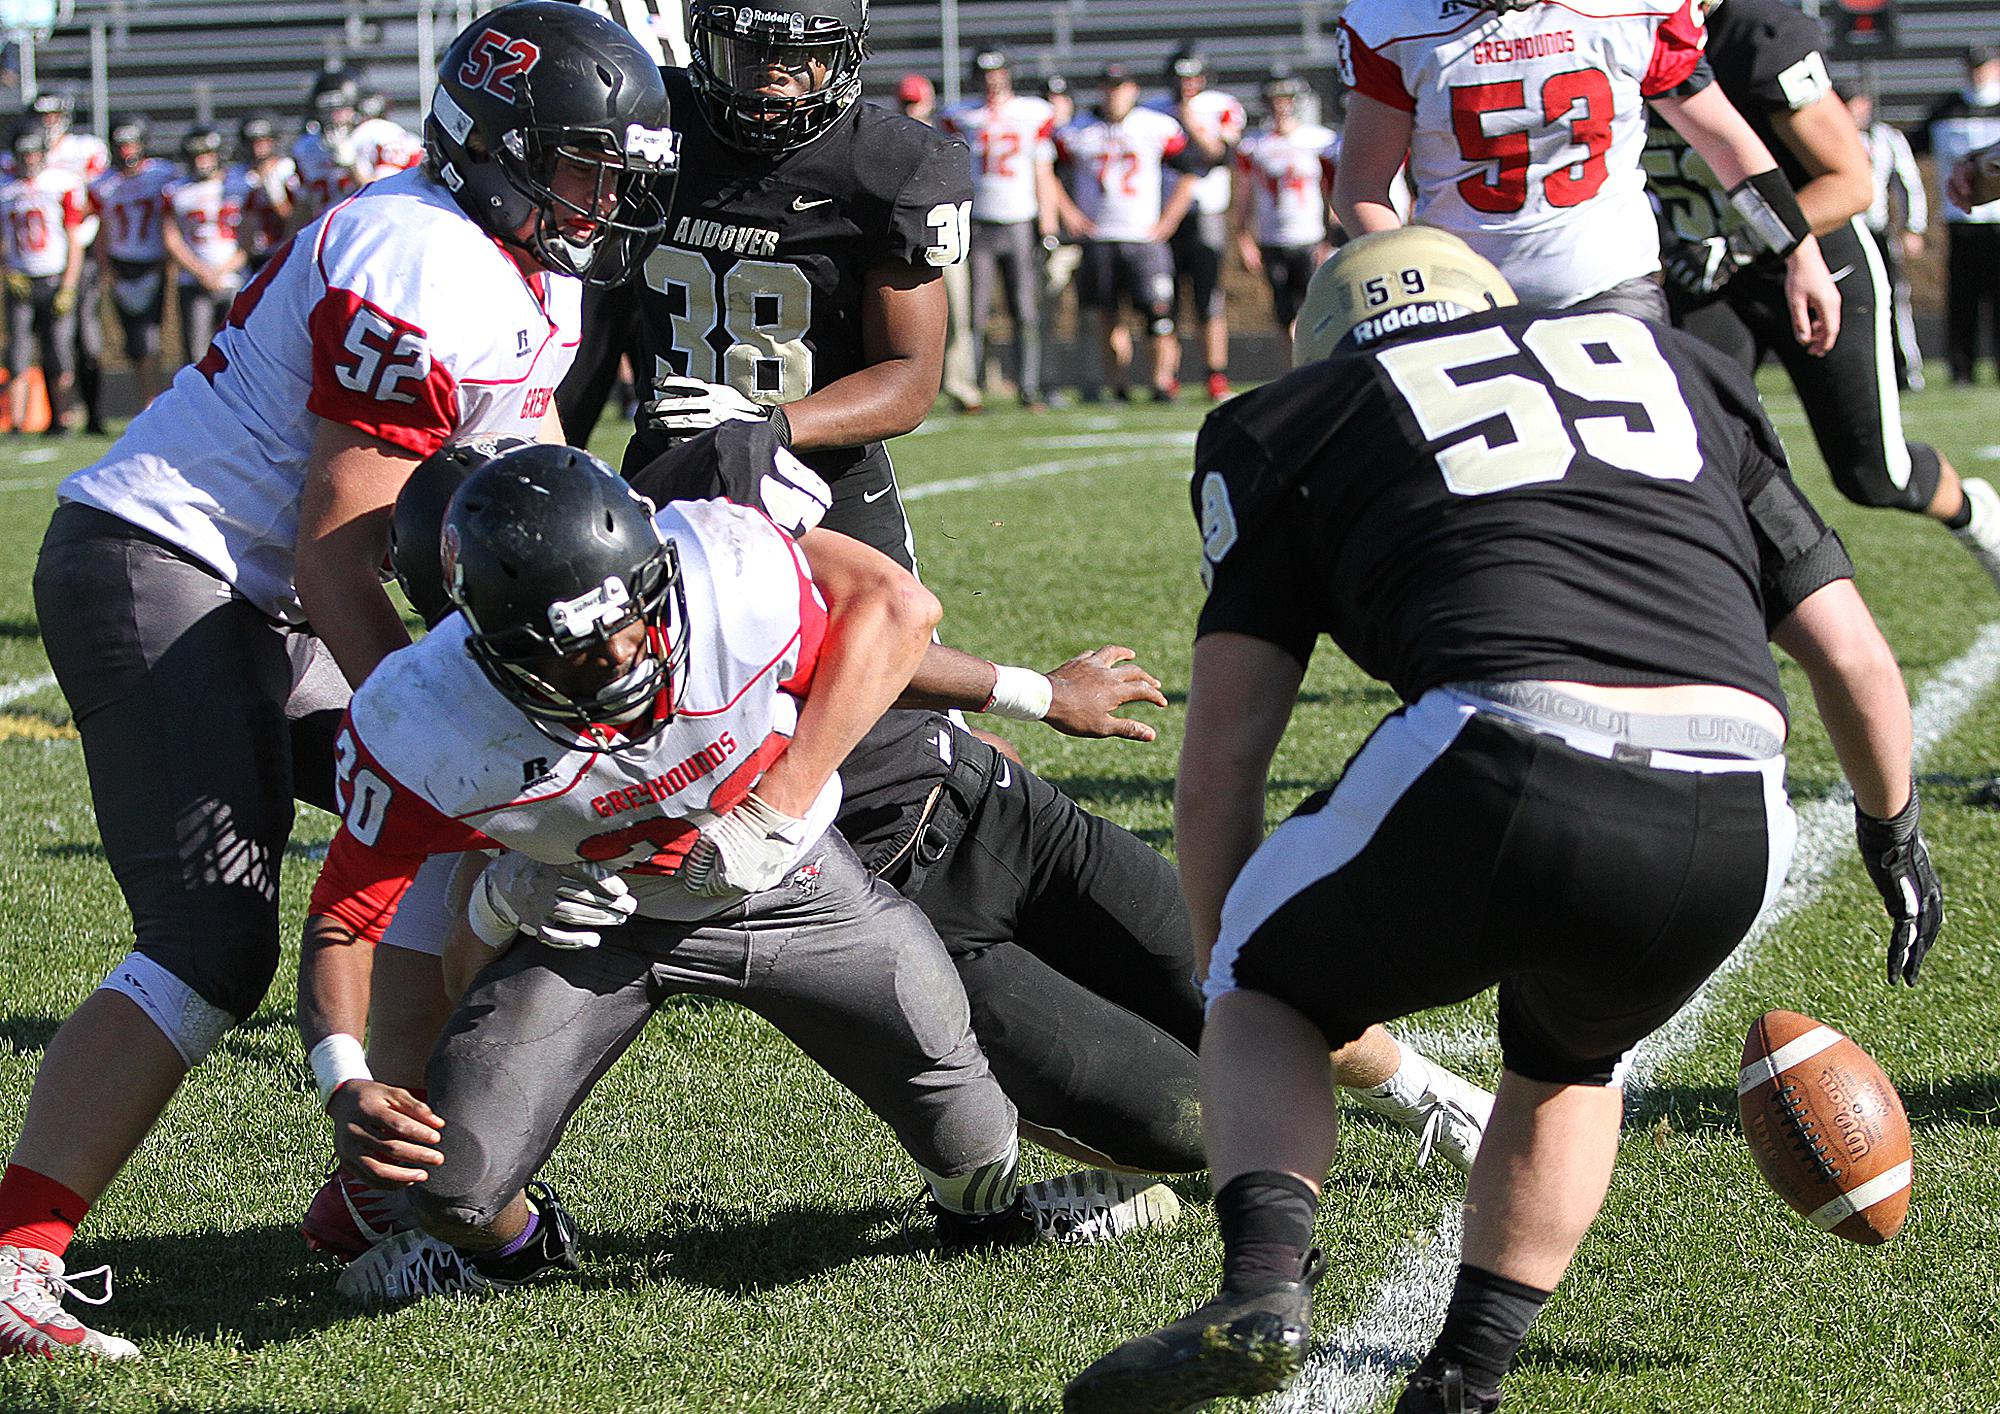 Andover defensive lineman Justin Kenning (59) recovers a fumble late in the second quarter. The takeaway set up a quick score by the Huskies, who raced to a 35-0 first-half lead over visiting Duluth East Saturday. Photo by Drew Herron, SportsEngine